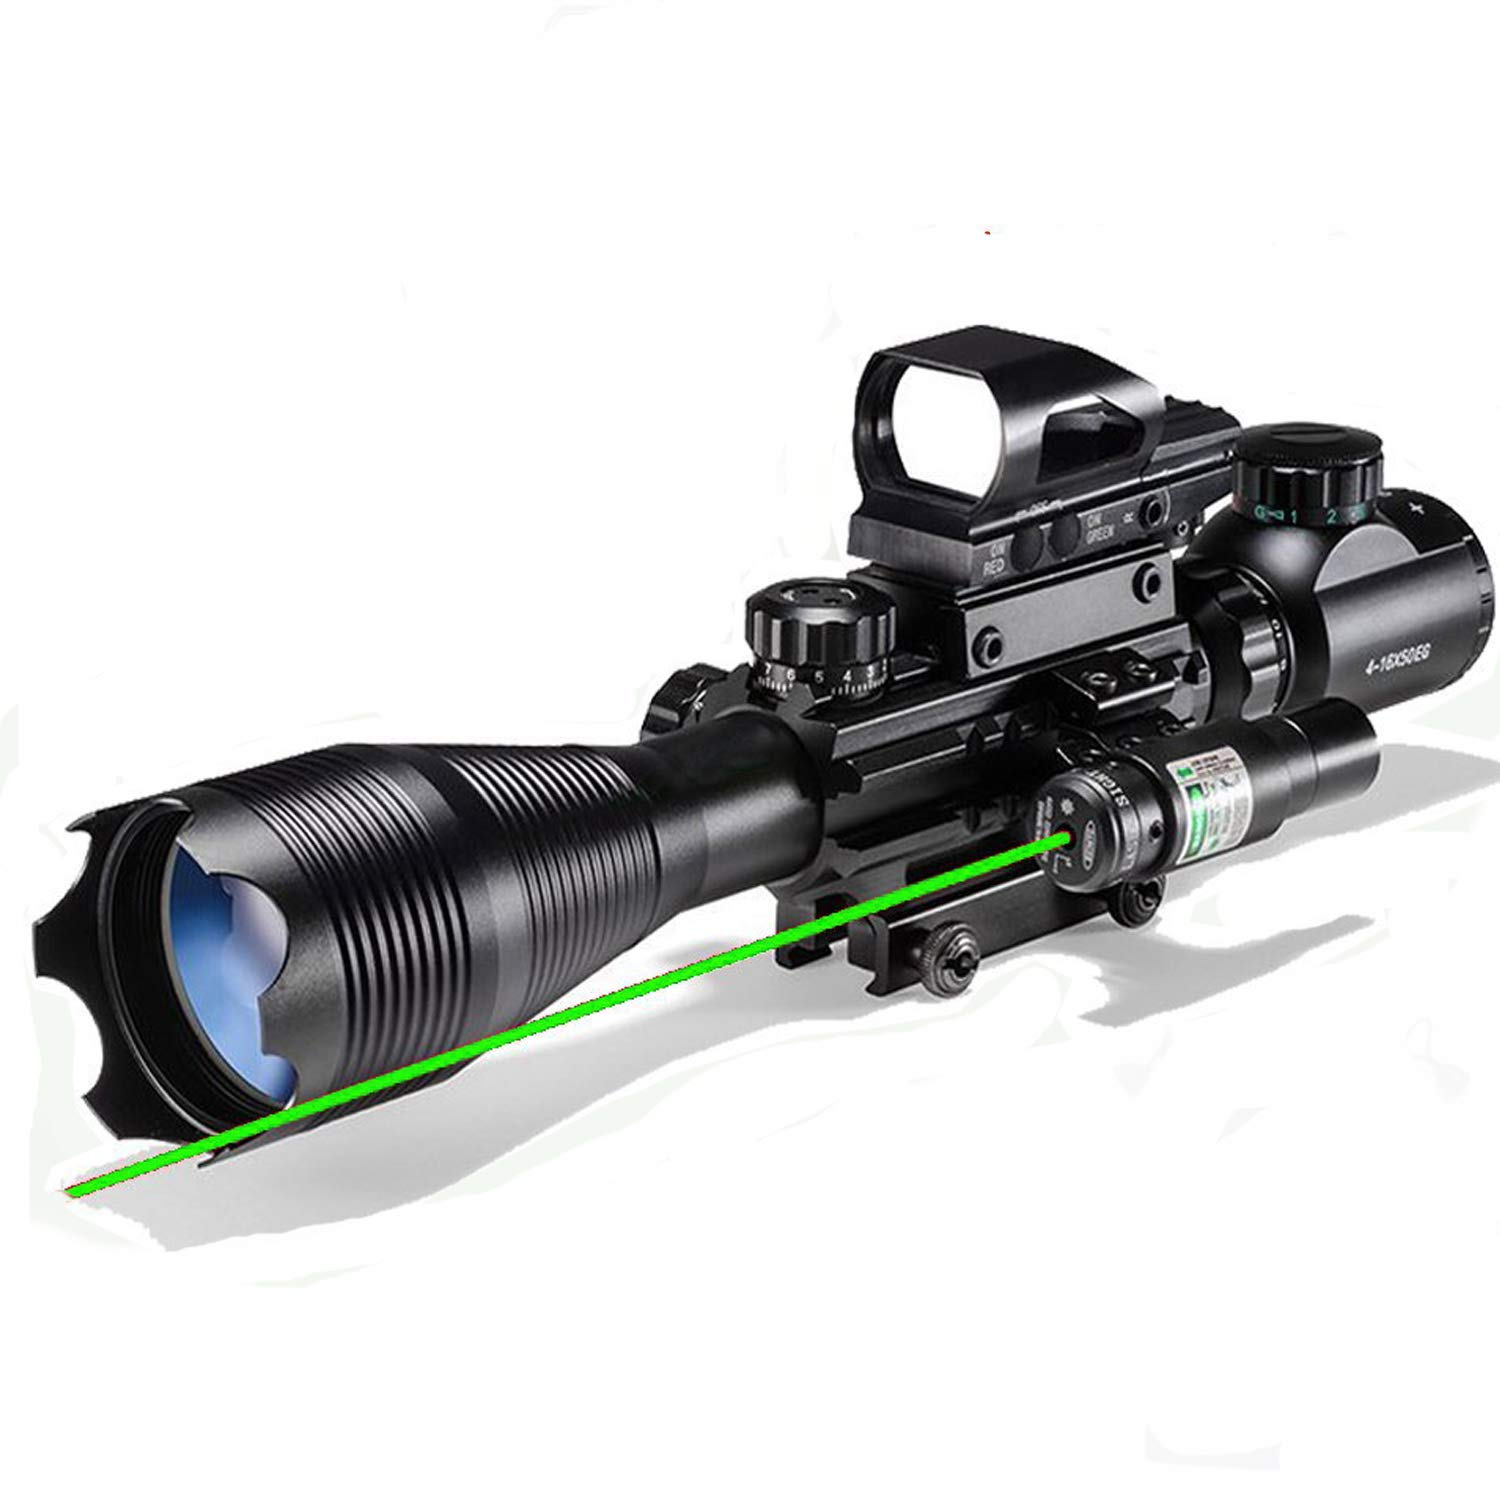 Hunting Rifle Scope Combo C4-16x50EG Dual Illuminated with Green Laser sight and 4 Holographic Reticle Red/Green Dot for 22mm Weaver/Rail Mount (Green Laser) by XopingABC